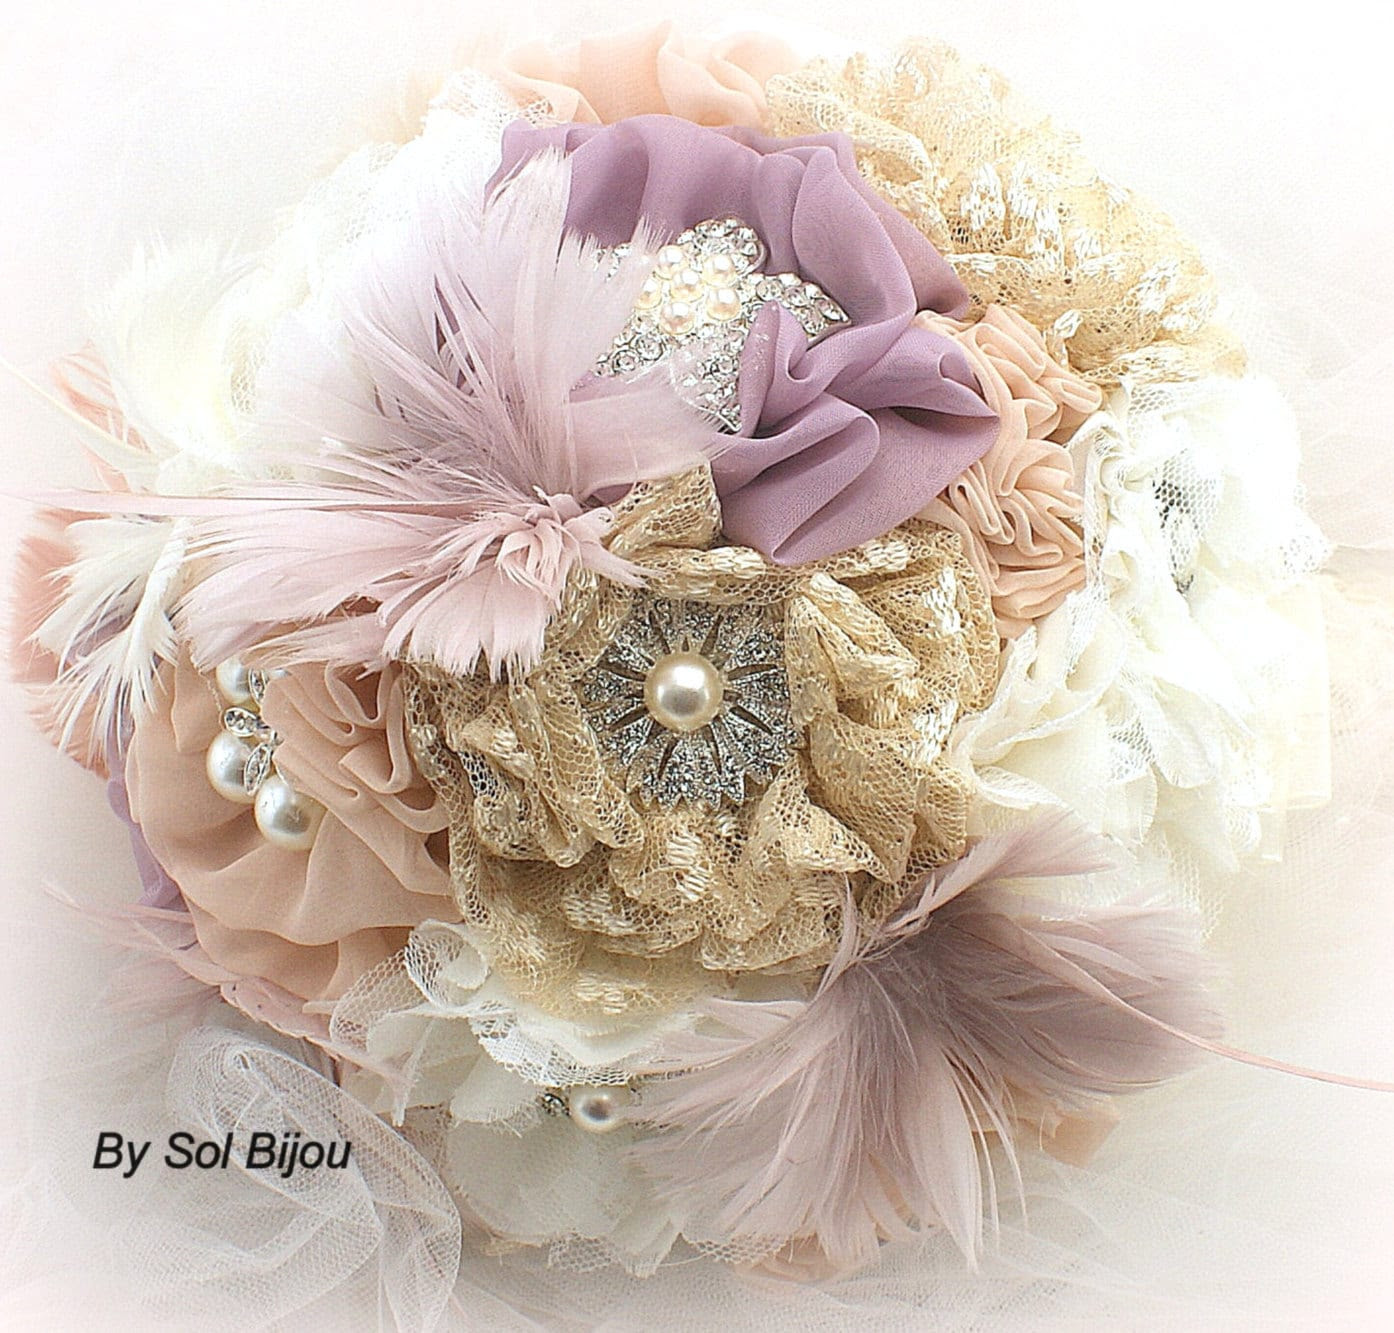 Brooch Bouquet Vintage-Style in Ivory, Champagne, Blush and Lilac with Feathers, Lace and Pearls